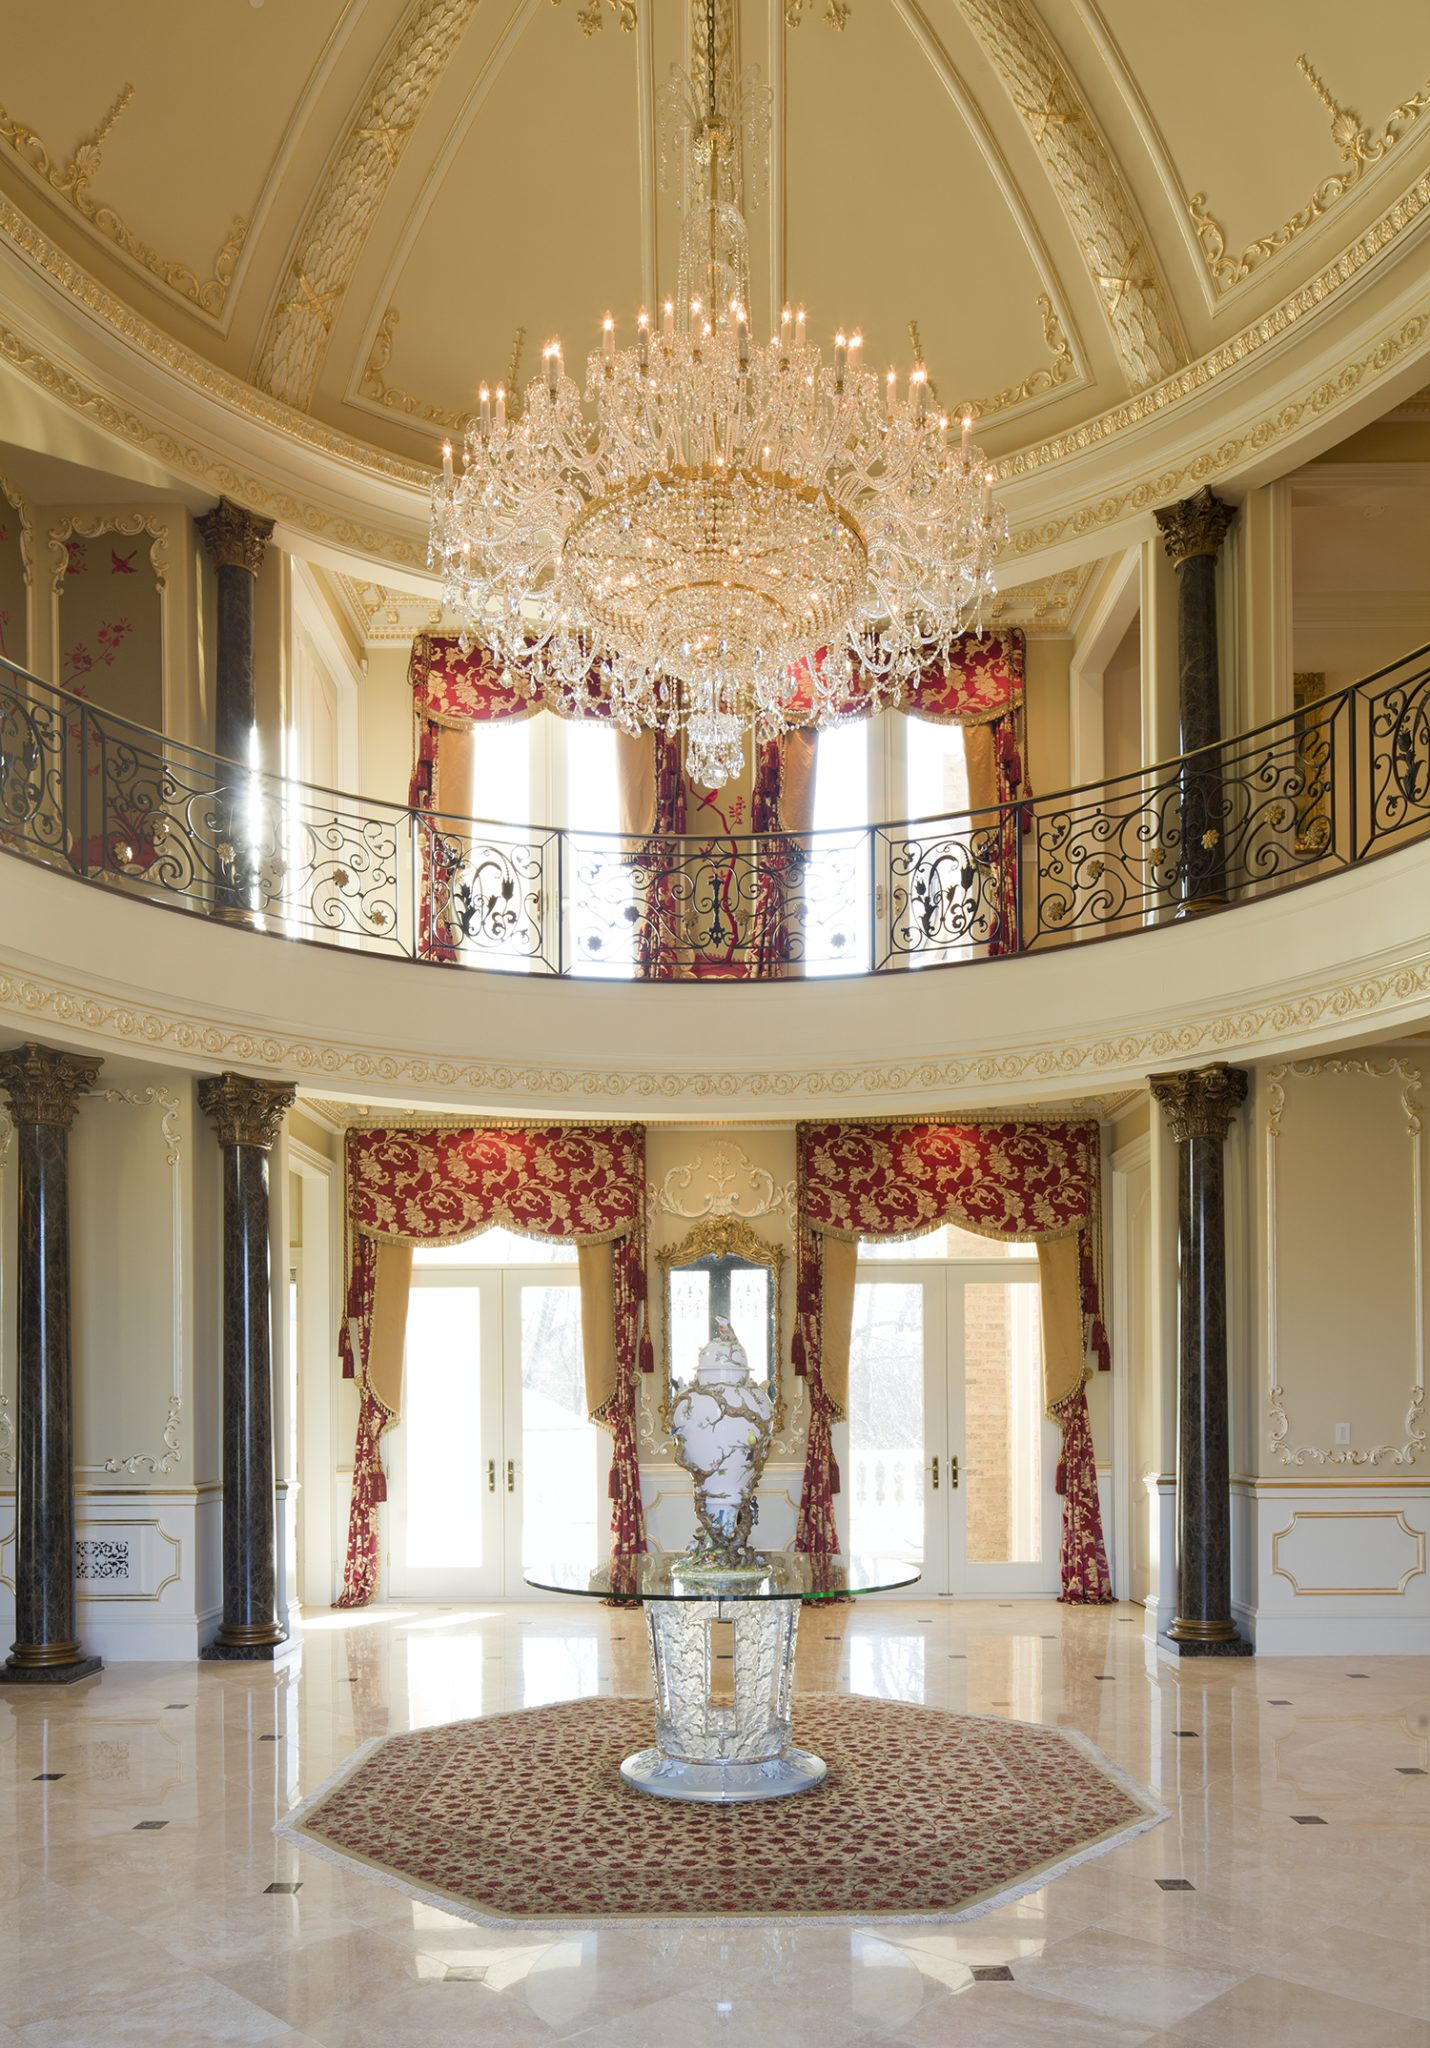 The 20' wide by 32' high dome features a 10-foot-wide Schonbek chandelier. by Haleh Design